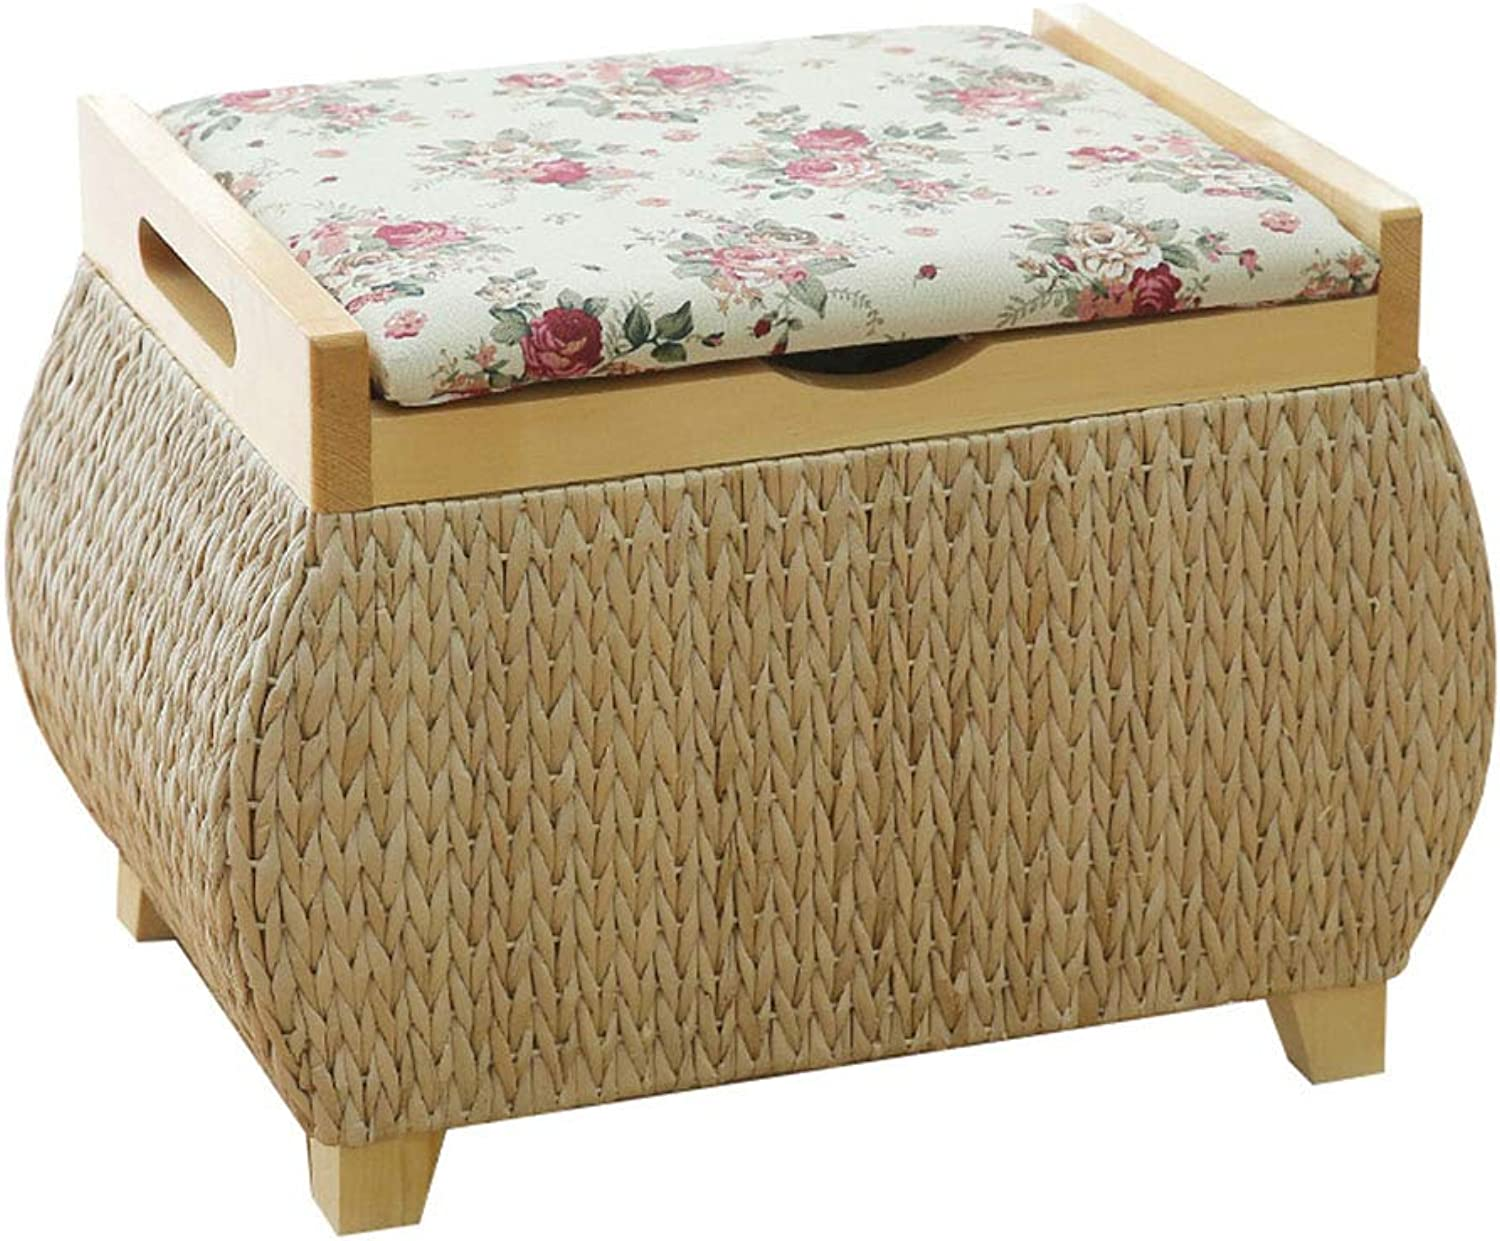 Storage Stool shoes Bench Hand-Woven Grass Rectangular Multi-Function Stool